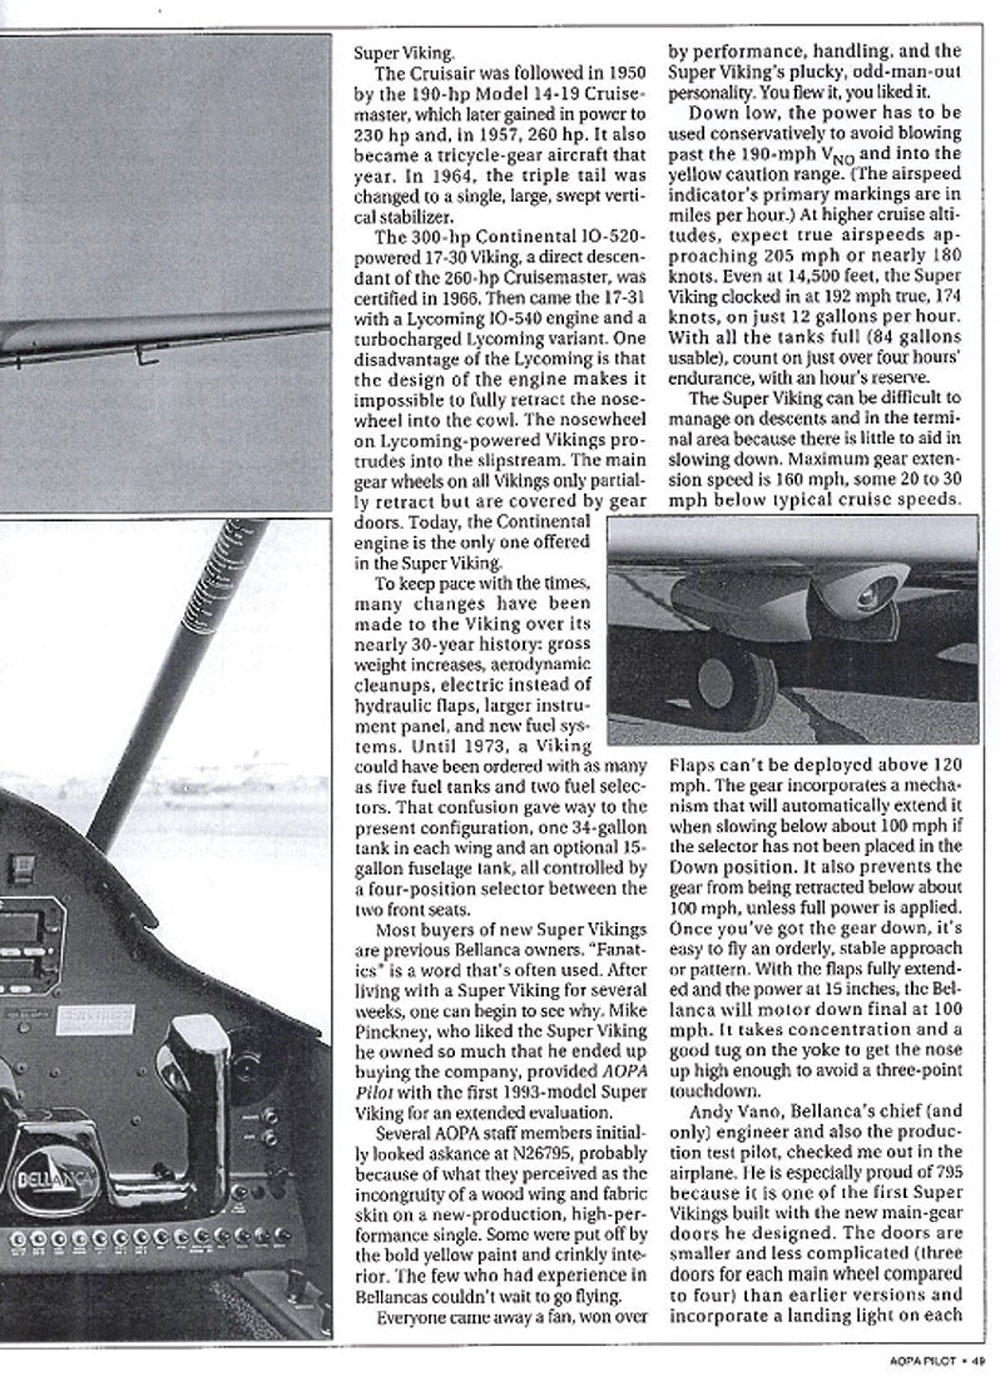 AOPA Article Page 4